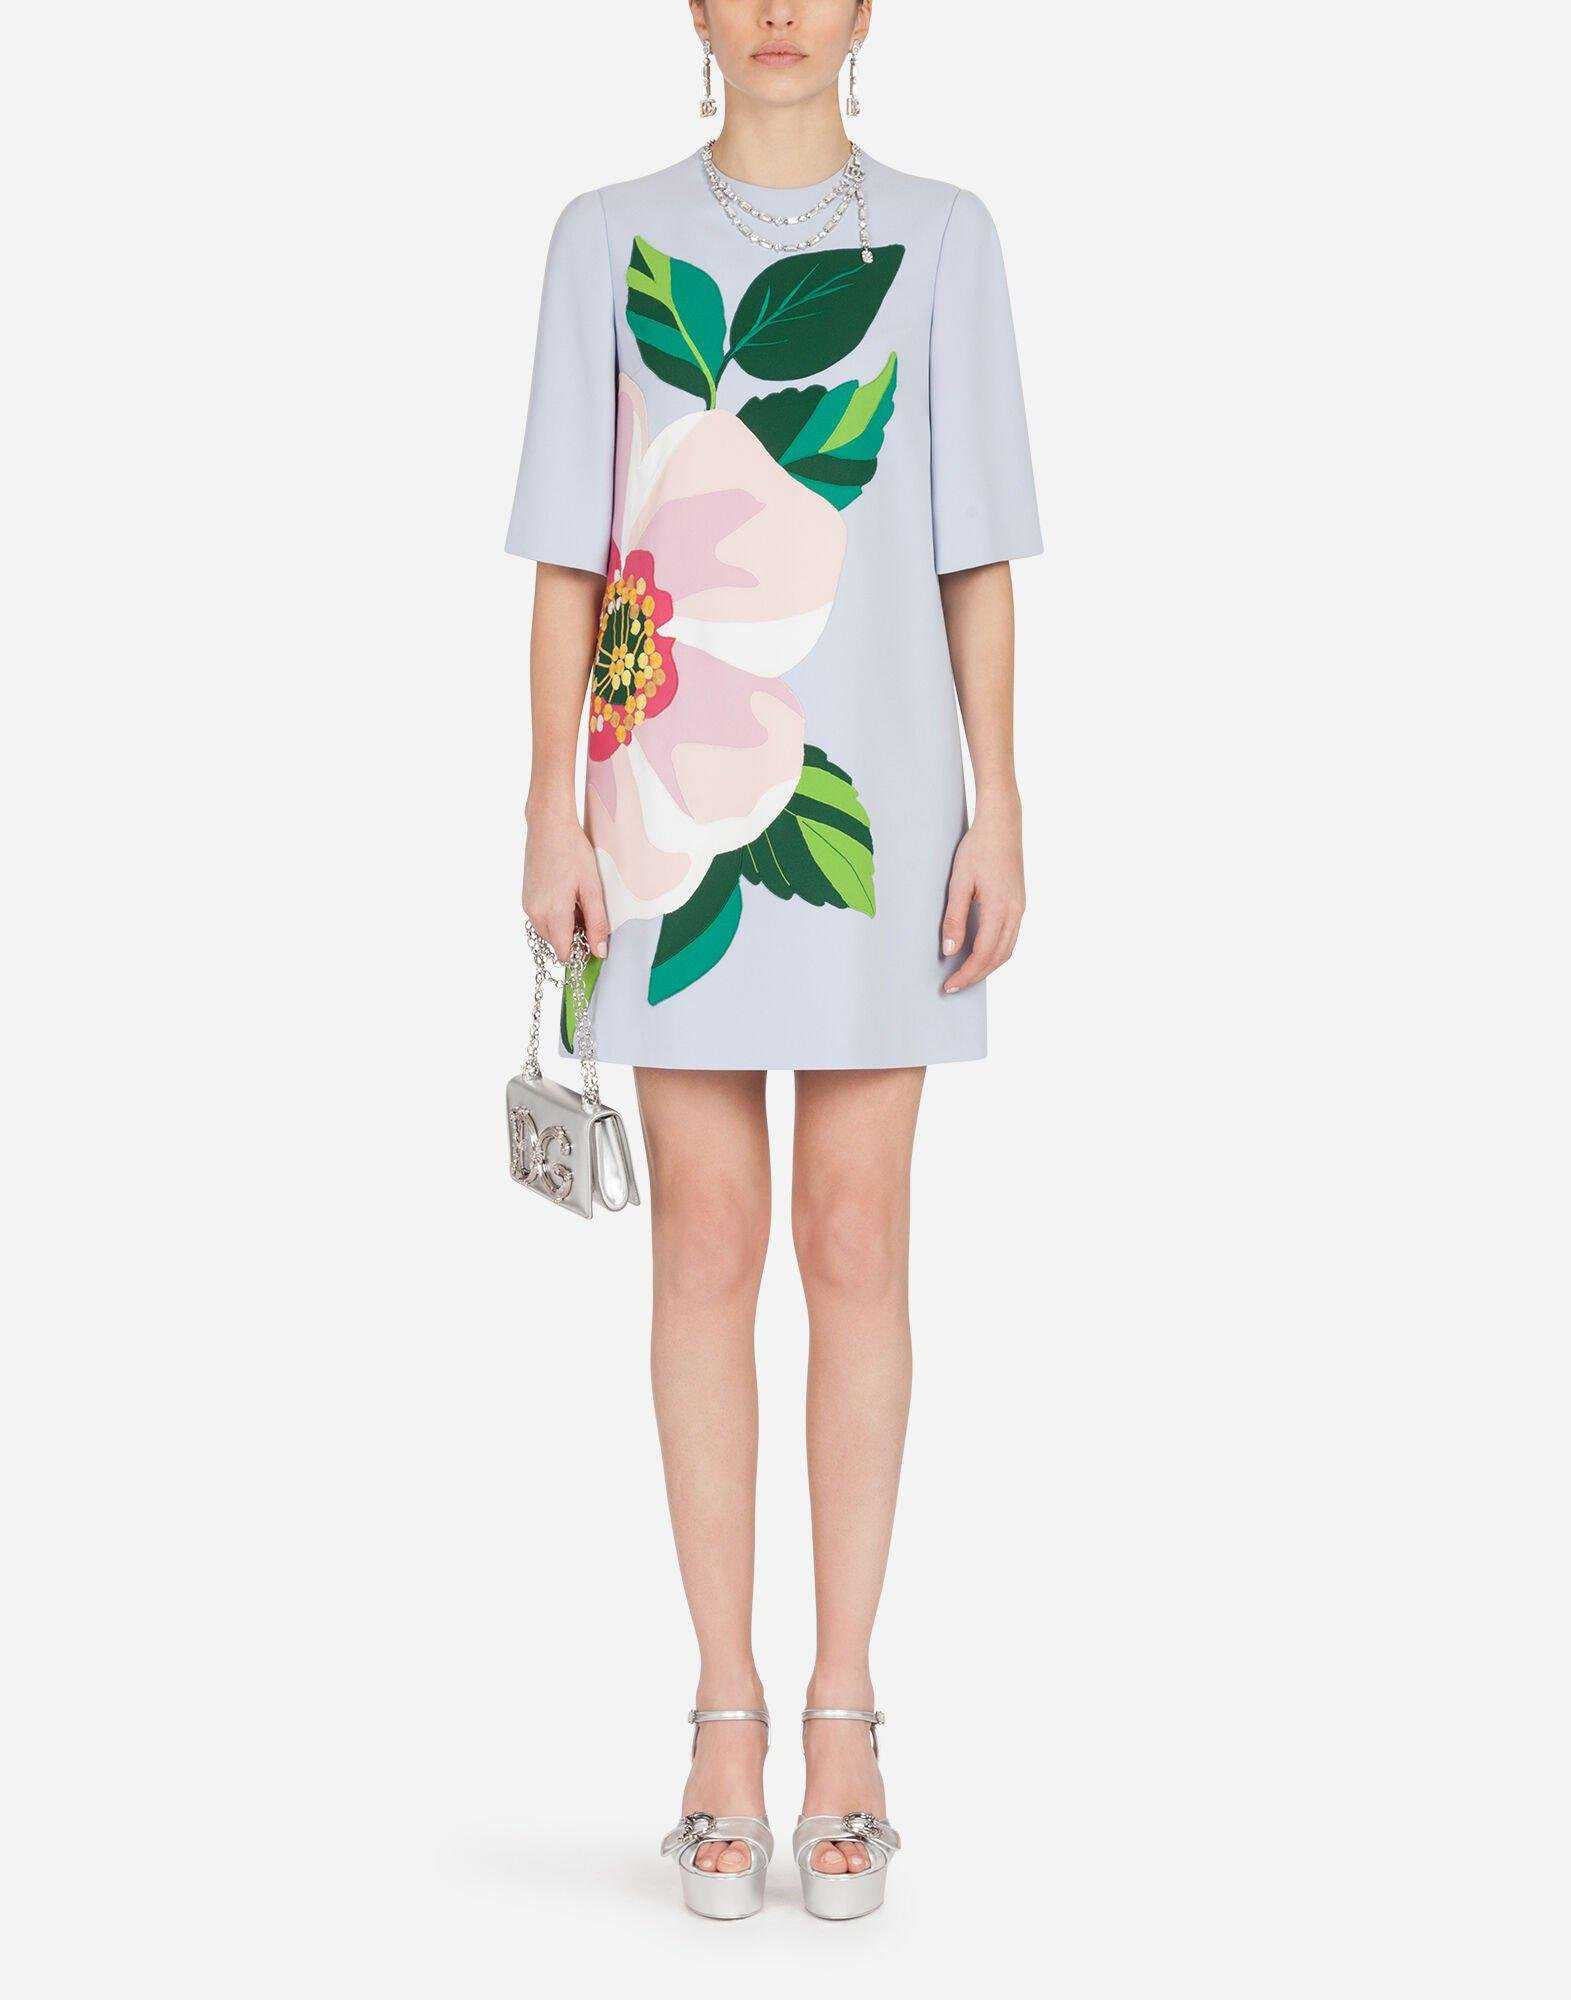 Short cady dress with floral embellishment